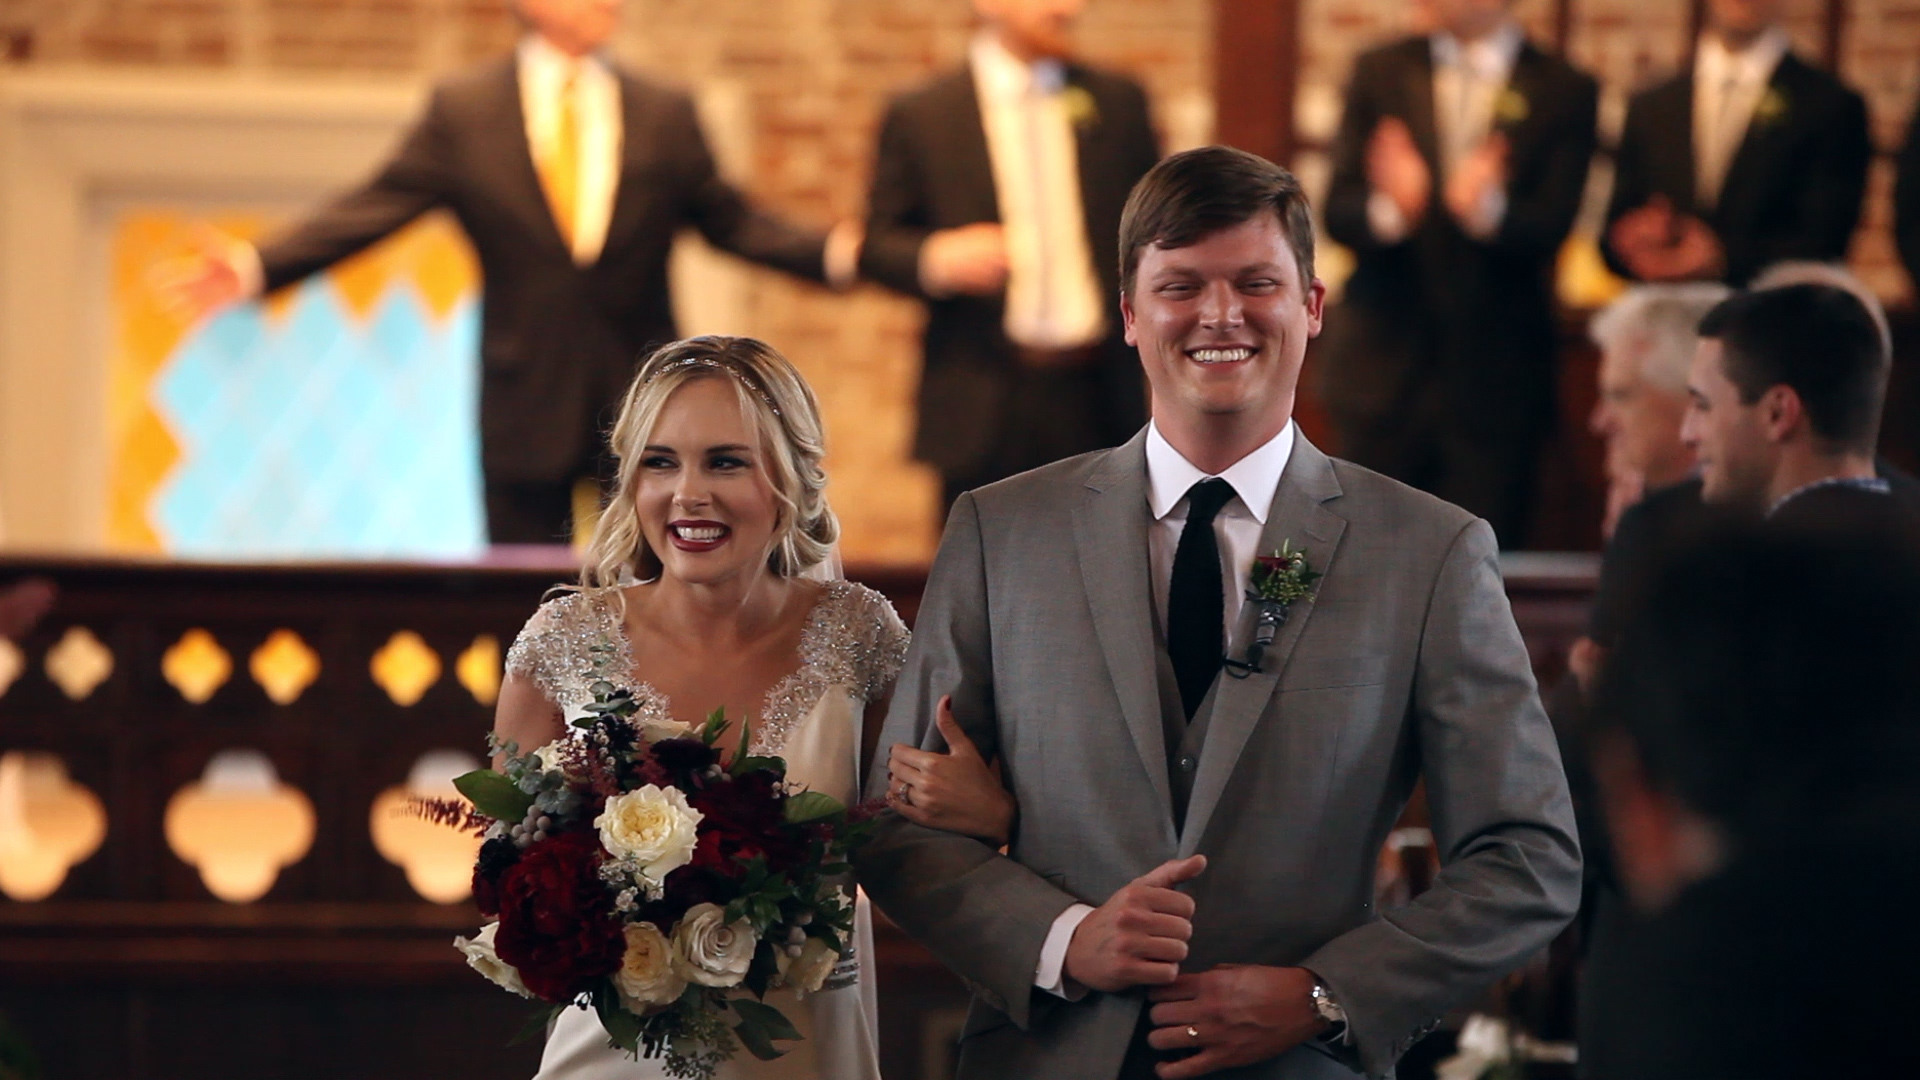 This is one of our favorite moments of the wedding day...the excitement is so real right as the bride and groom become husband and wife!